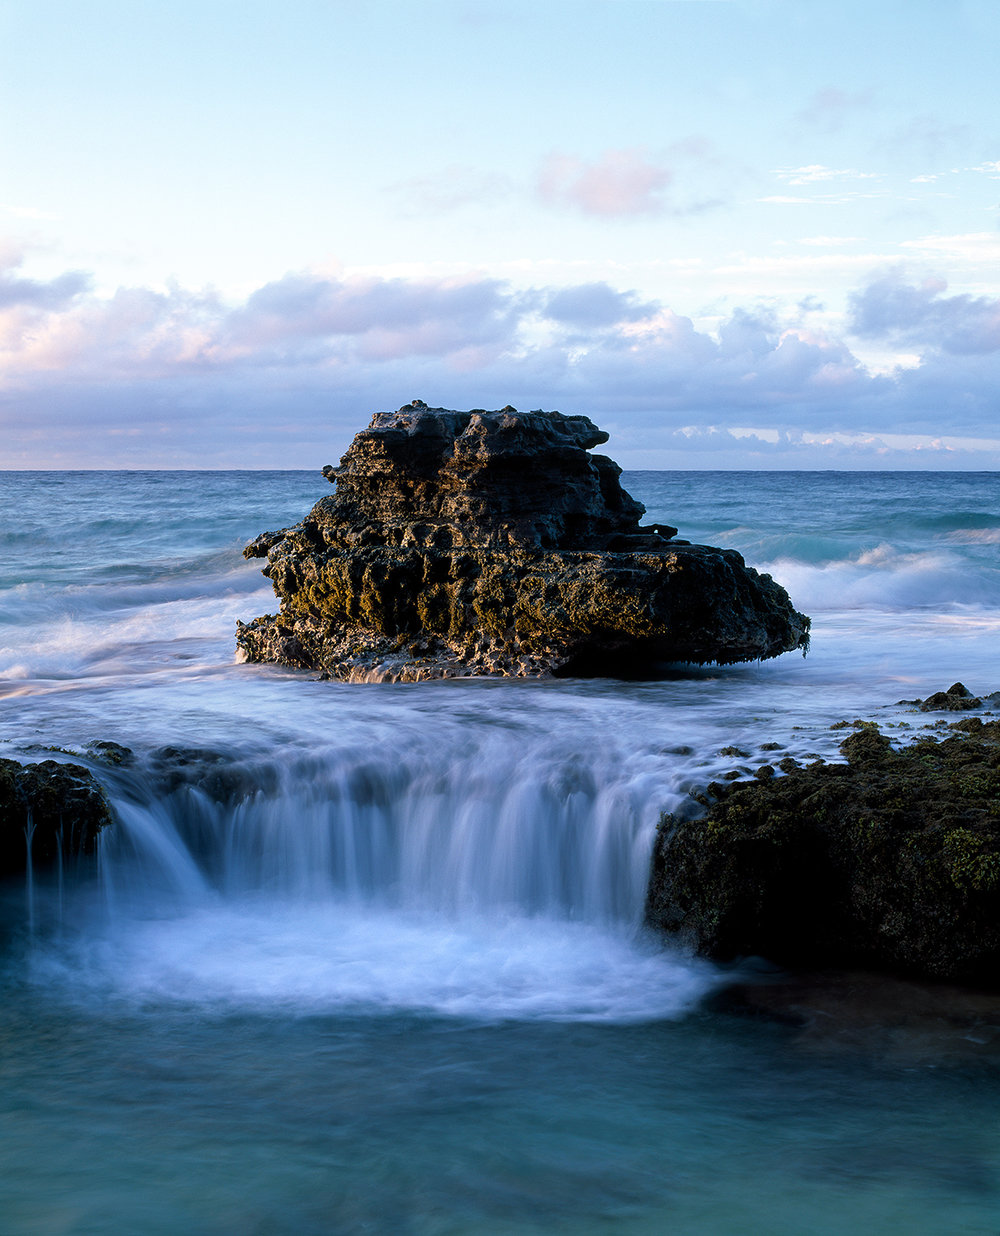 Exposed reef, Oahu 2012